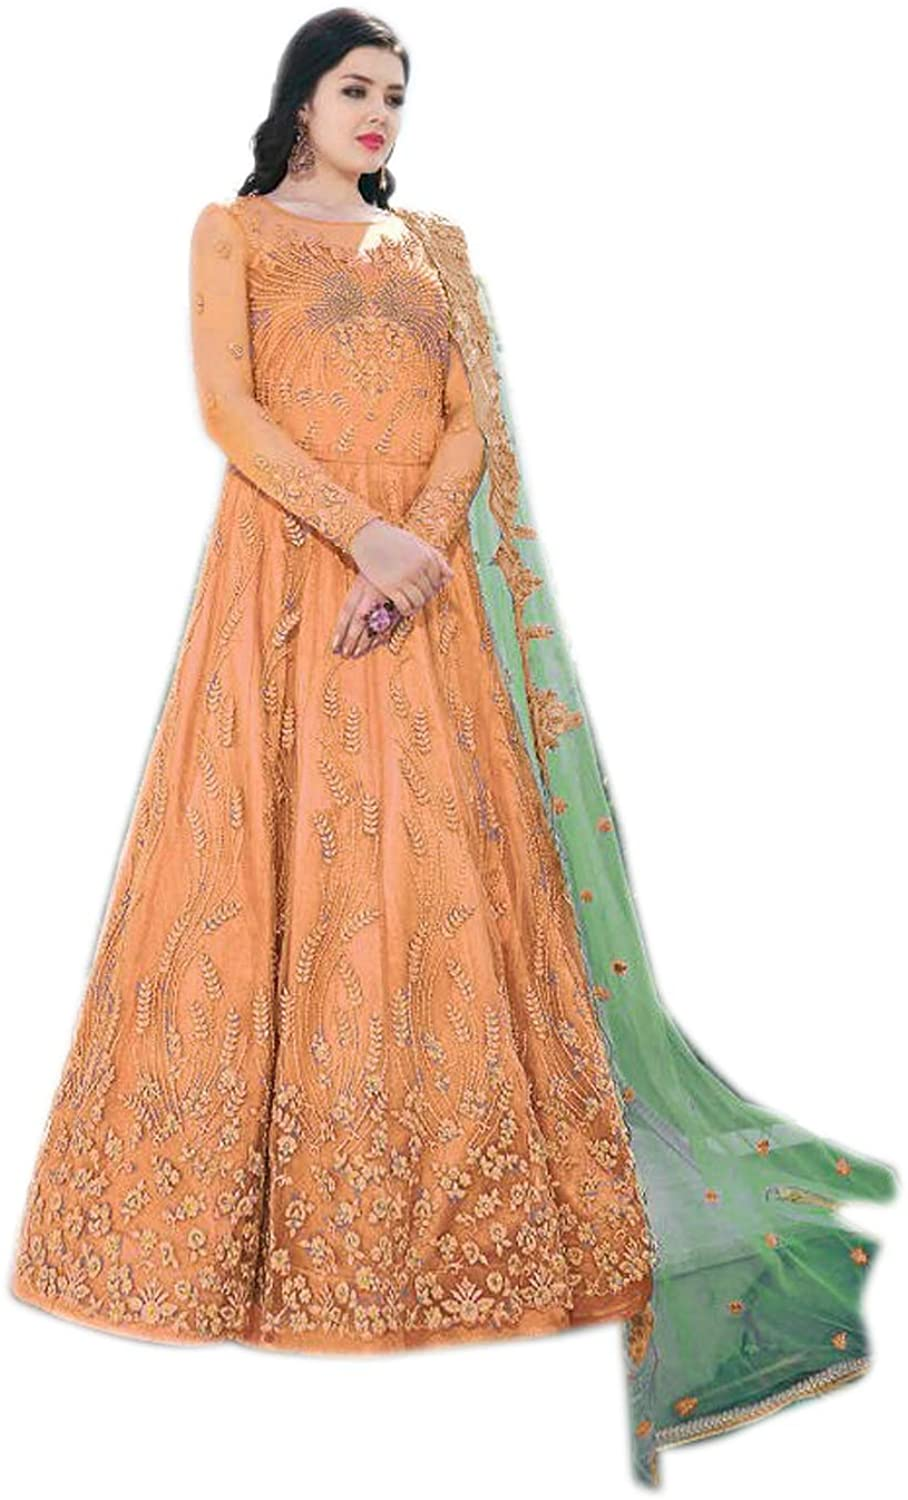 We Designer New Styelis Indian/Pakistani Bollywood Party Wear Long Anarkali Gown Suit for Womens